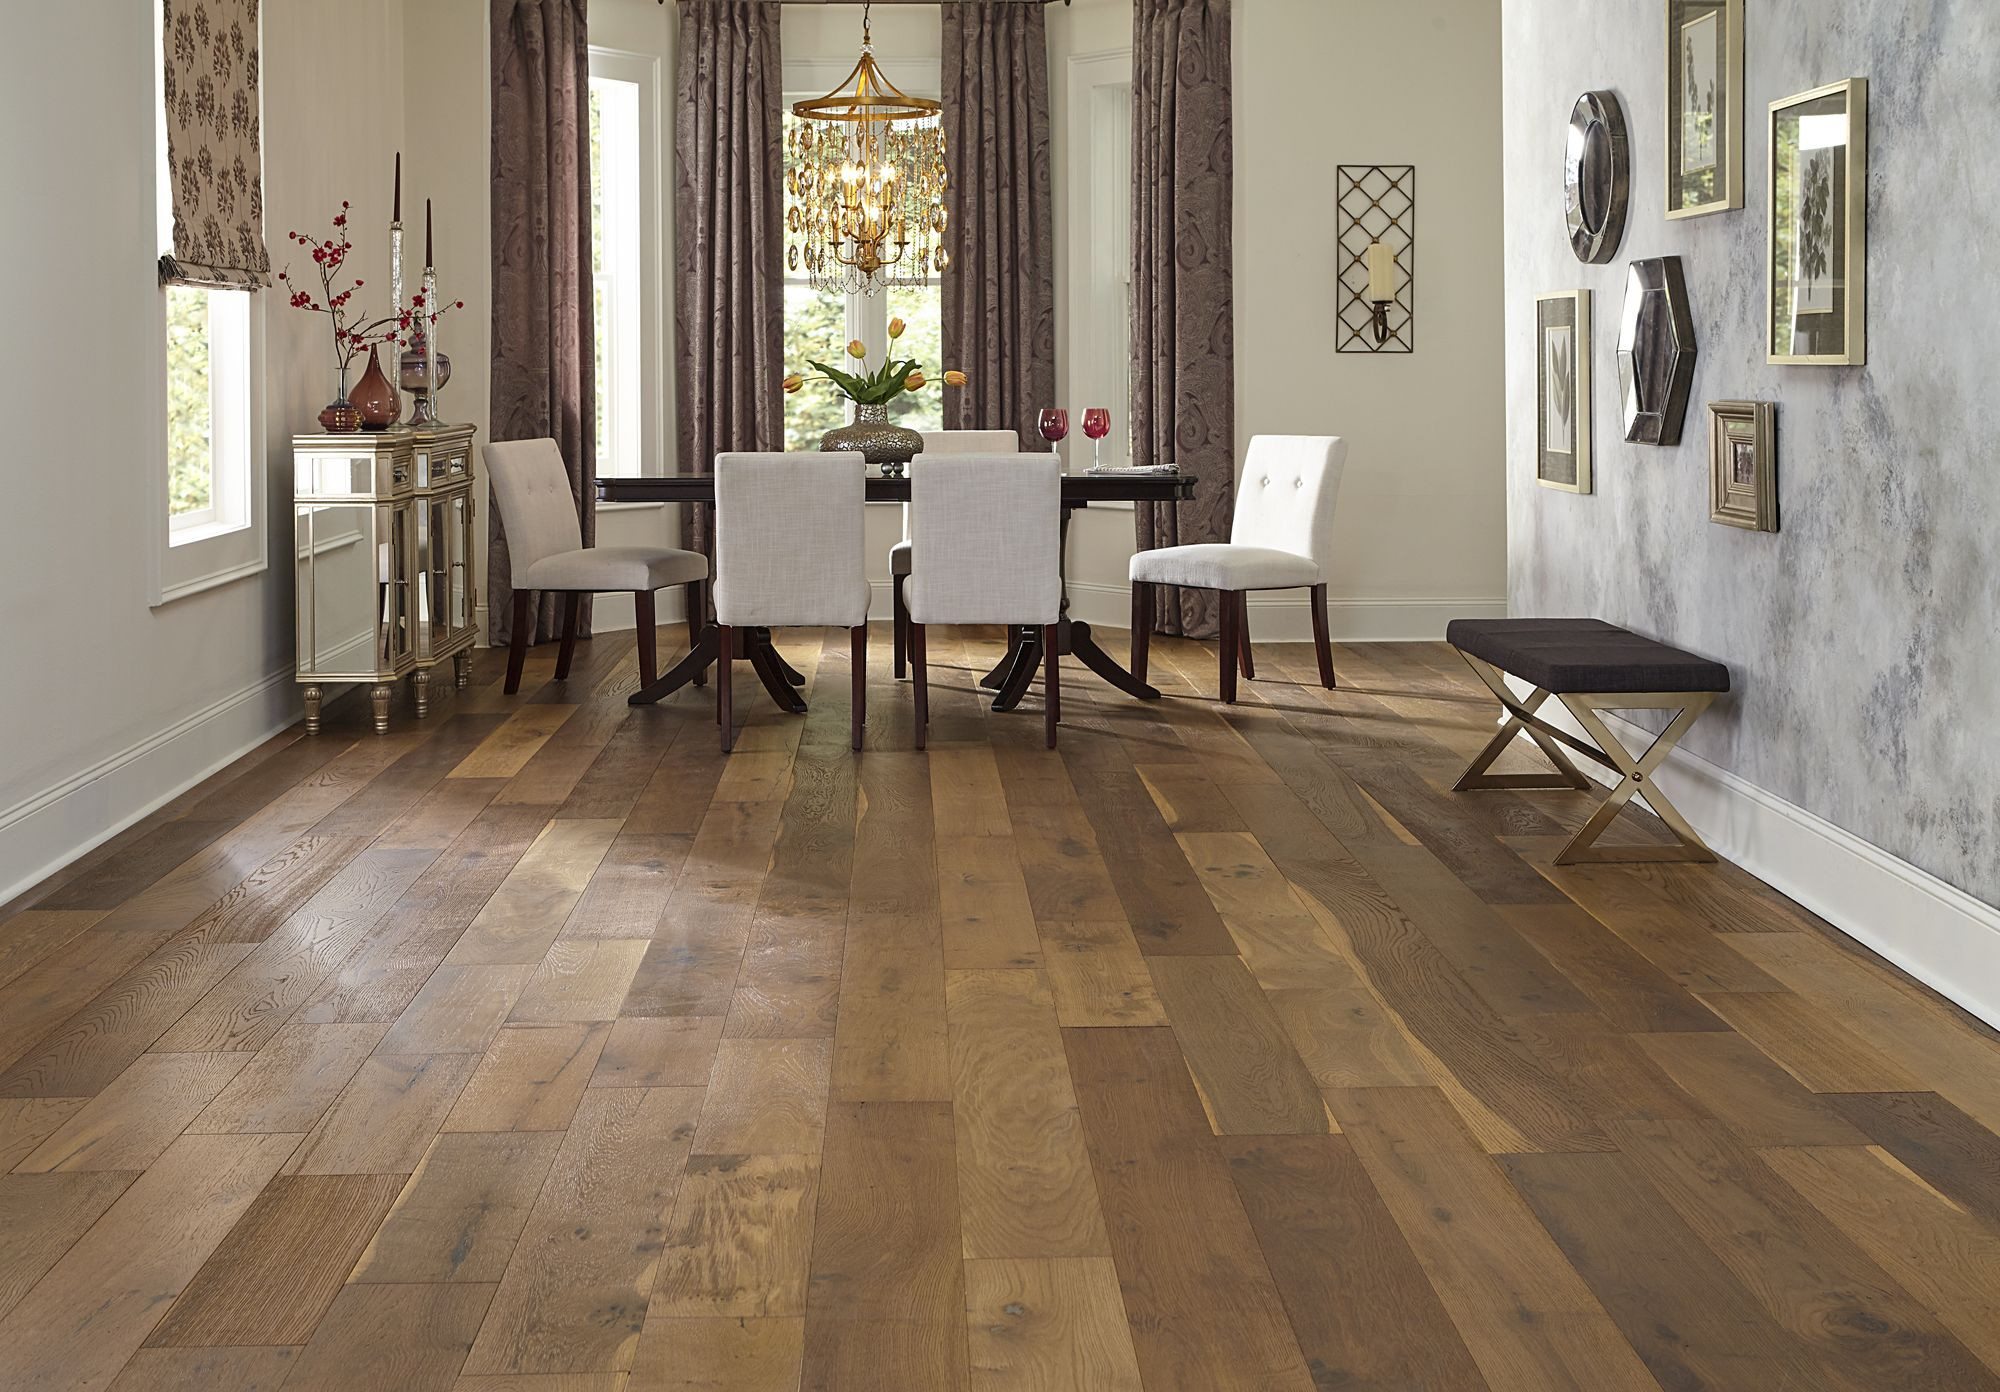 2 1 4 Prefinished Hardwood Flooring Of 7 1 2 Wide Planks and A Rustic Look Bellawood Willow Manor Oak Has Intended for 7 1 2 Wide Planks and A Rustic Look Bellawood Willow Manor Oak Has A Storied Old World Appearance